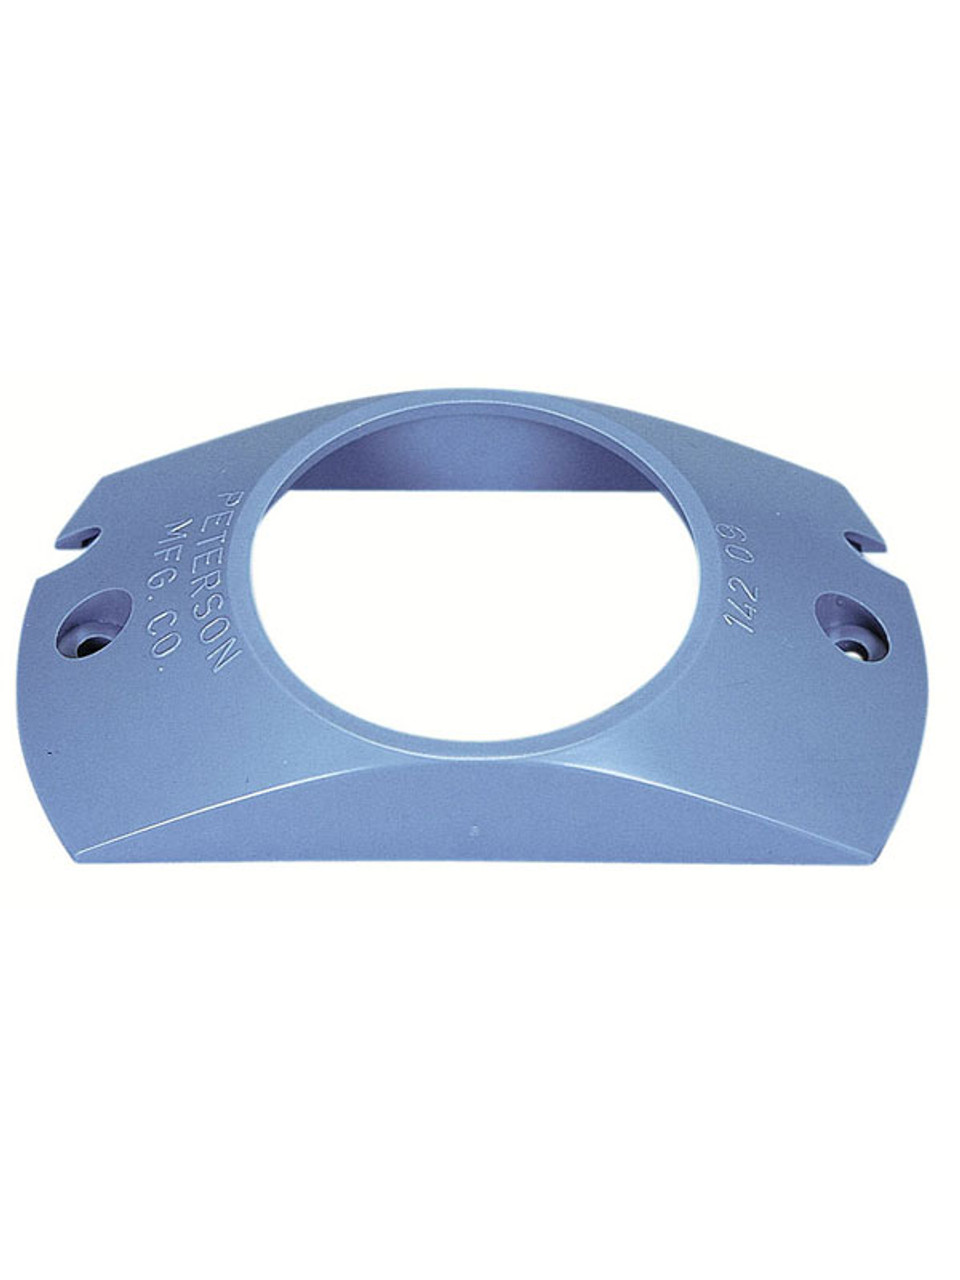 """142-09 --- Peterson Surface Mounting Bracket for 2-1/2"""" Round Lights"""